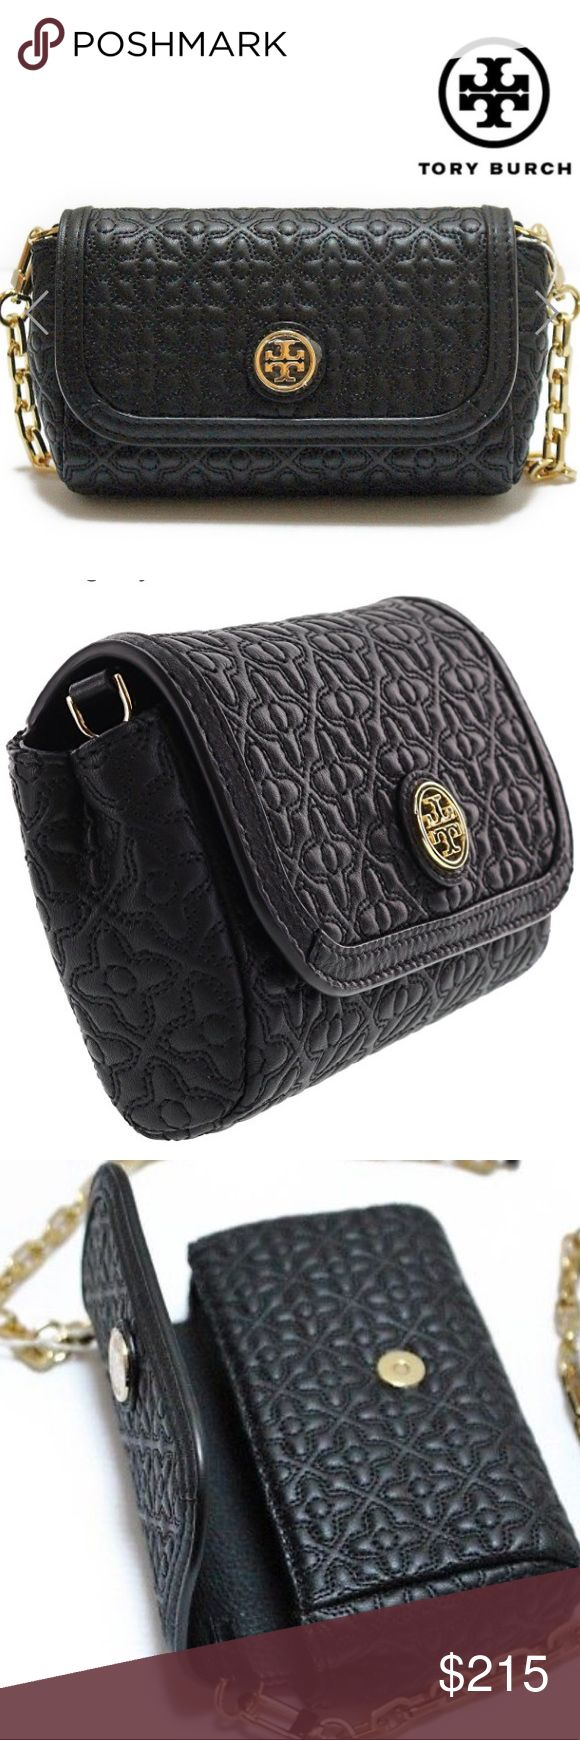 """tory burch // bryant quilted leather crossbody NWT Tory Burch Bryant quilted leather crossbody with gold hardware and magnetic flap closure. Double stacked T logo in front. Optional chain with leather strap: length 22.5"""". Interior has TB logo fabric lining and 2 card slots.   6"""" (L) x 3.75"""" (H) x 1.75"""" (W) Tory Burch Bags Crossbody Bags"""